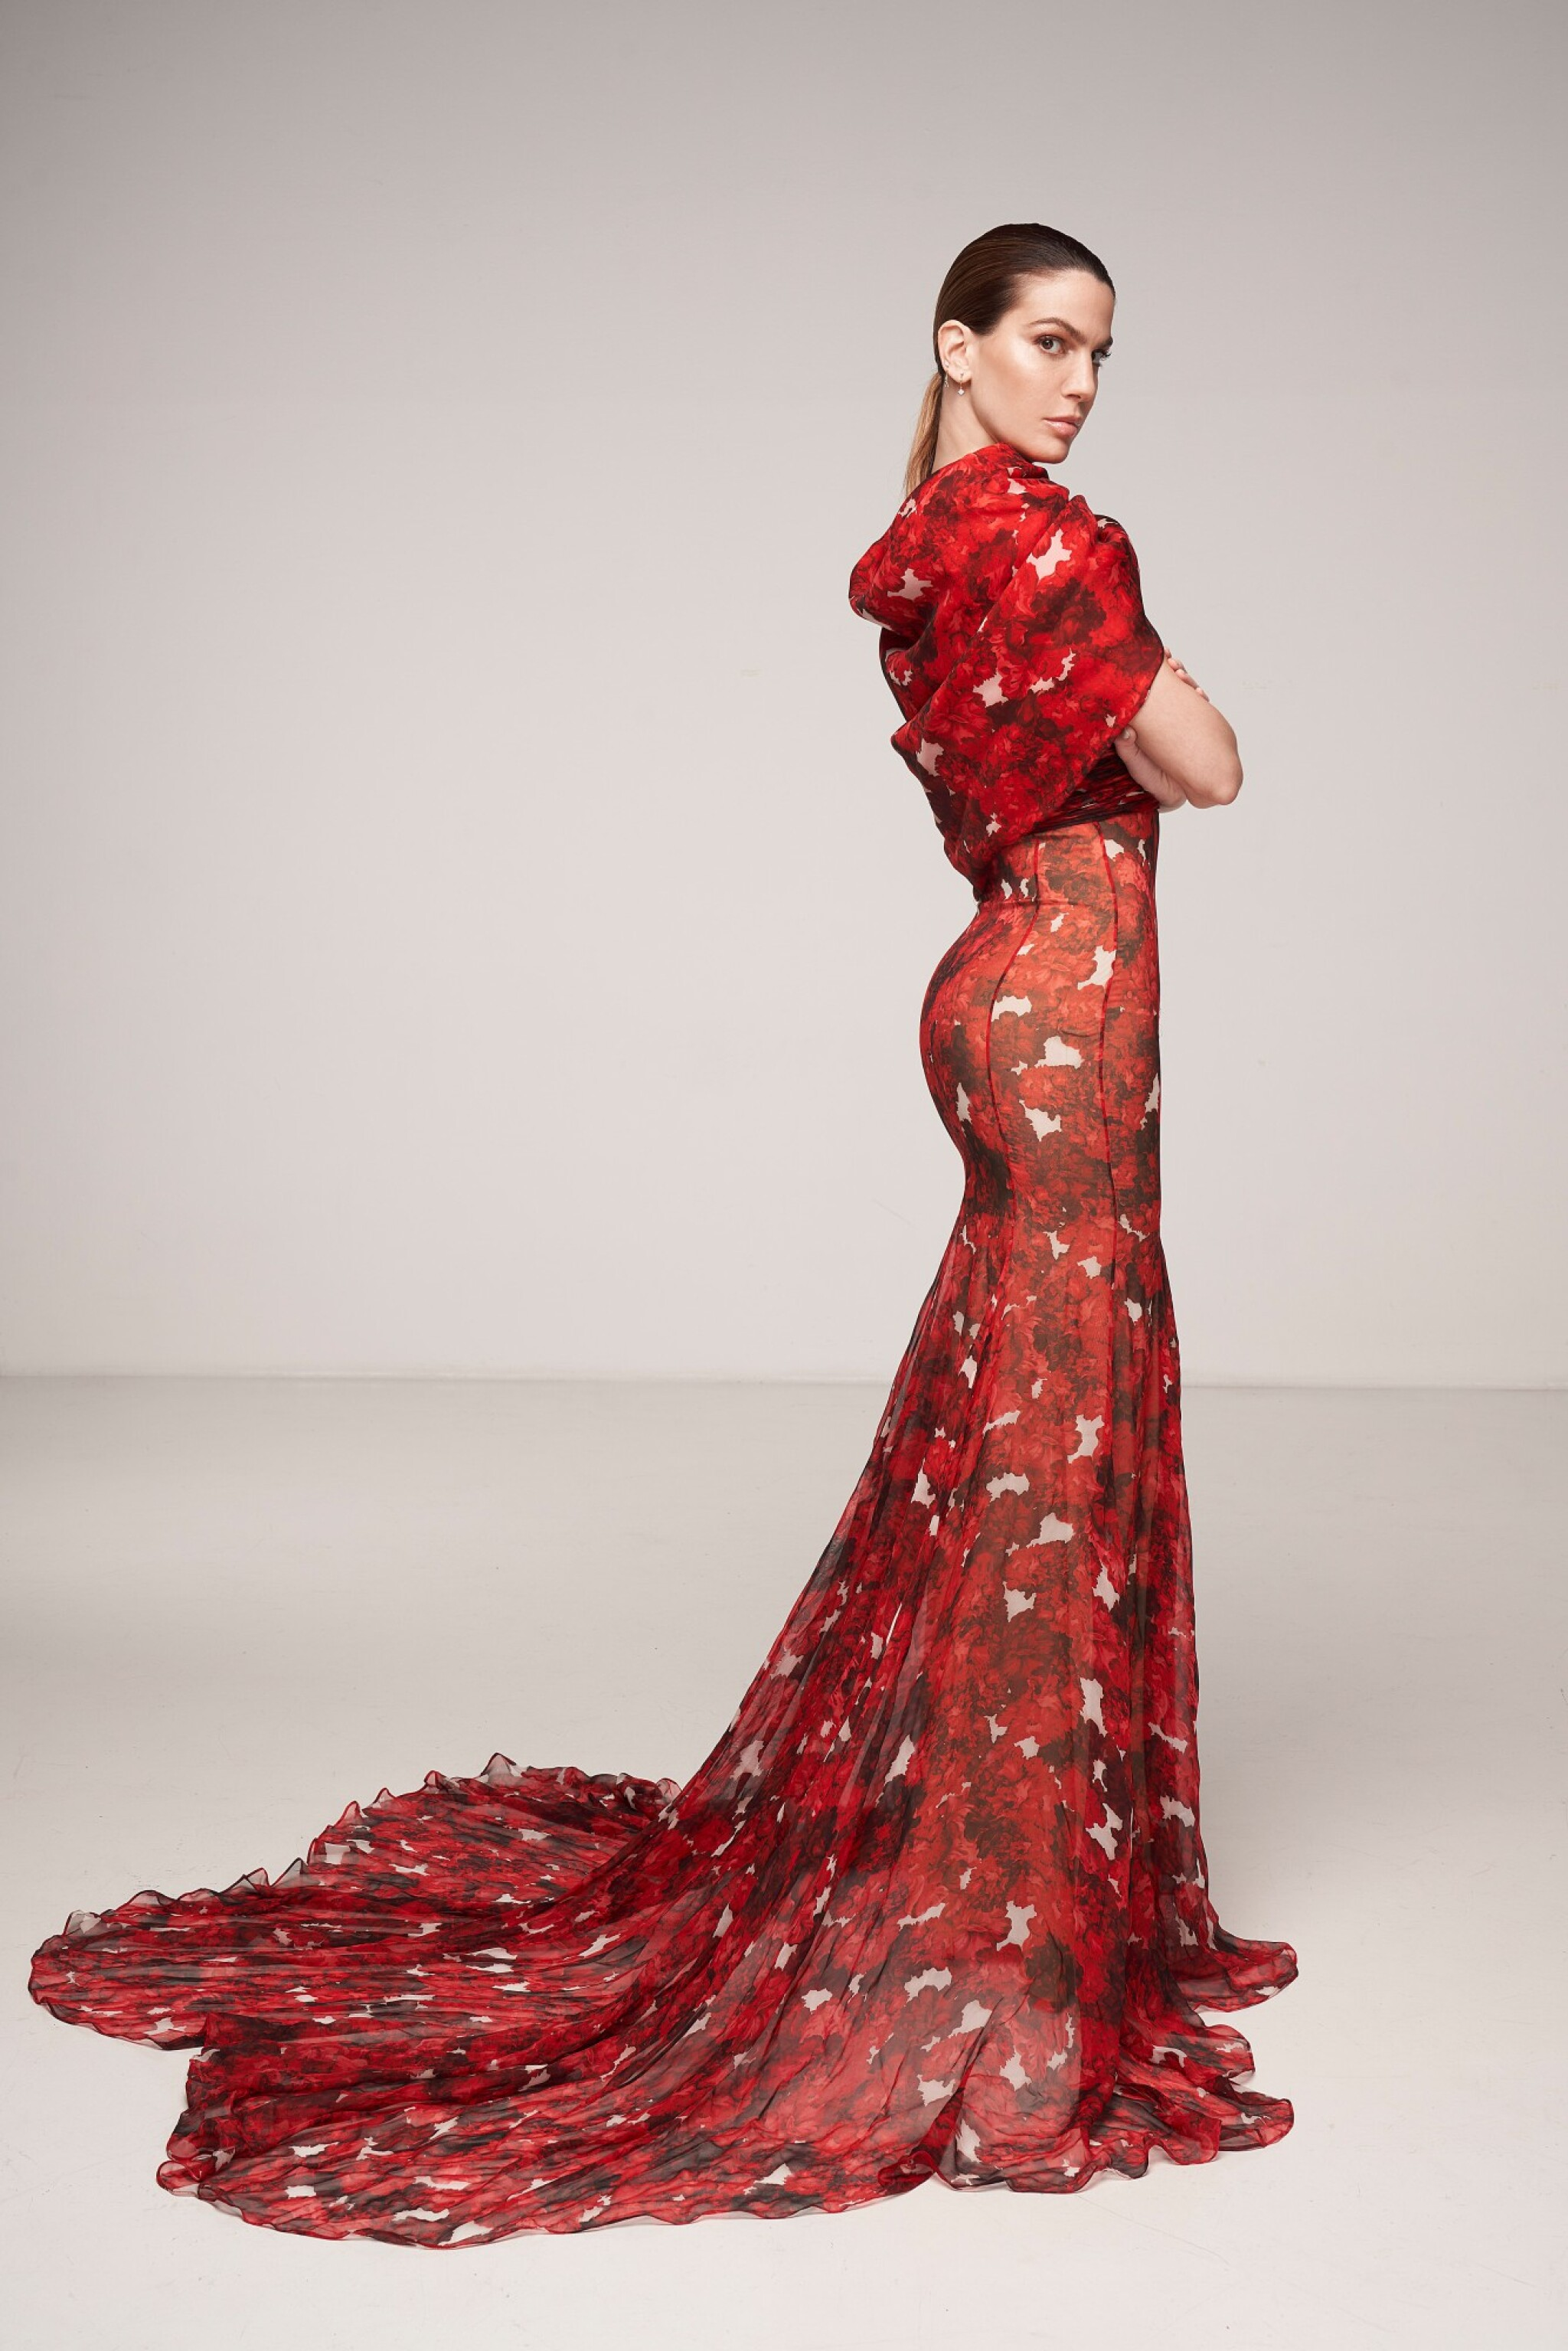 View 1 of Lot 37. Haute Couture Floral Printed Silk Chiffon and Gazar Evening Gown.